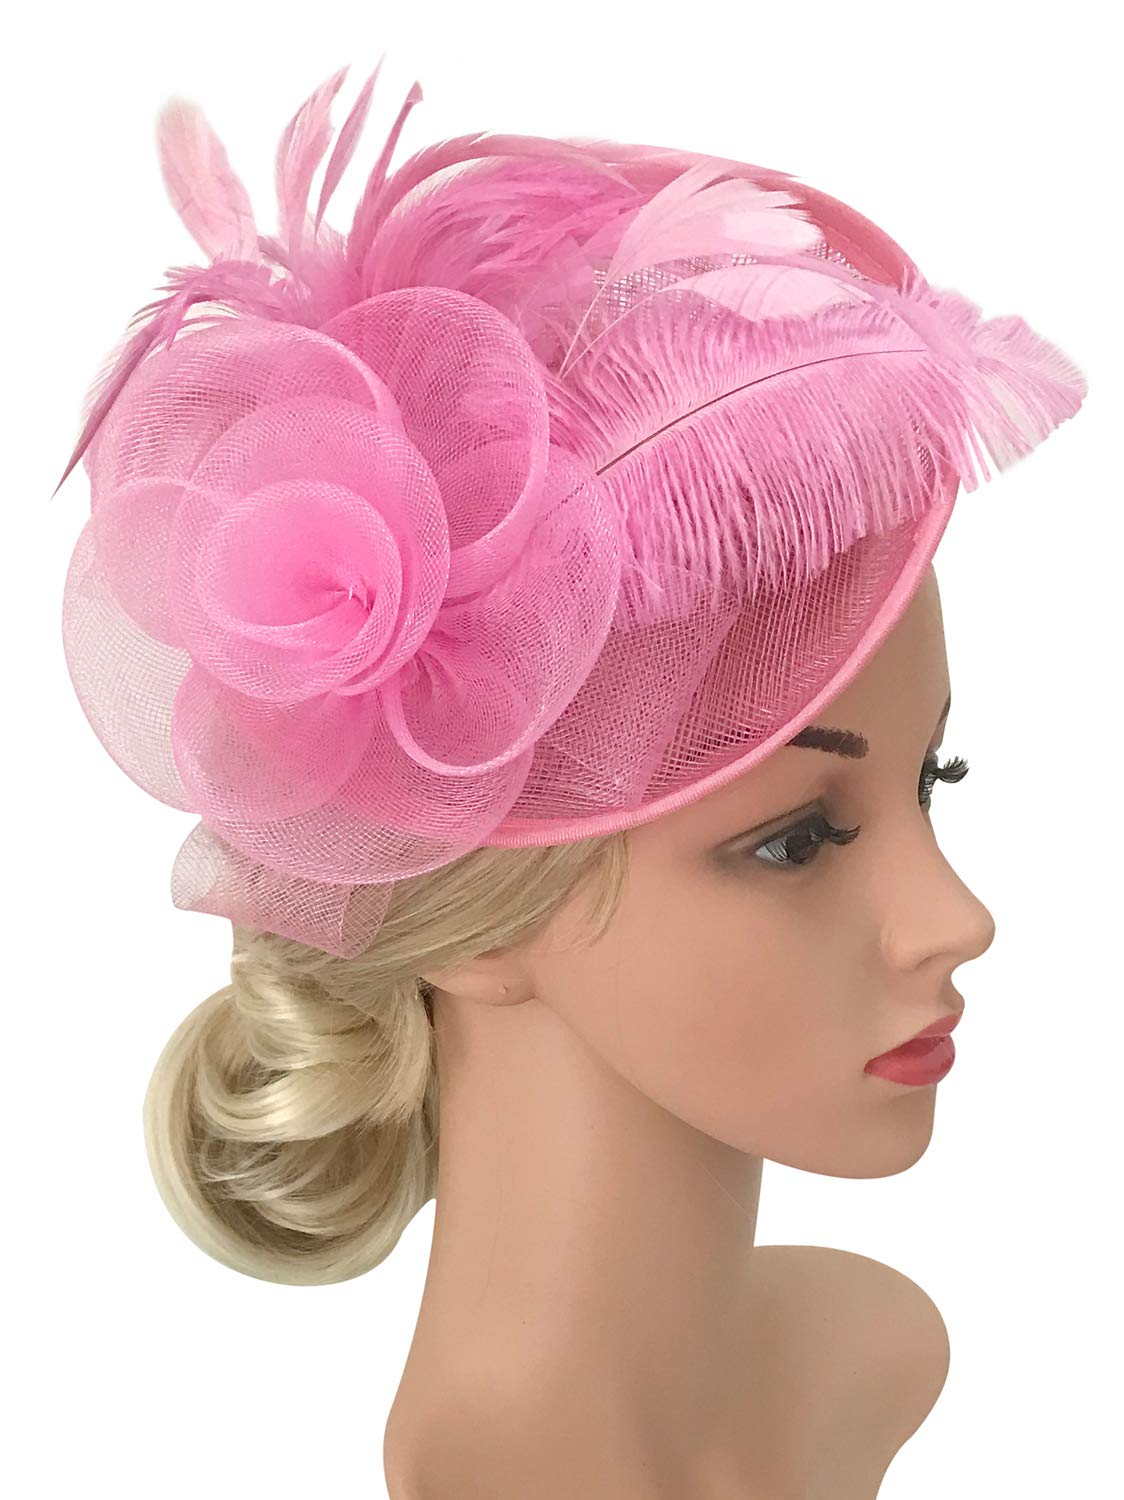 Z&X Sinamay Fascinator Feather Mesh Flower Derby Hat with Clip and Headband 17-0302028